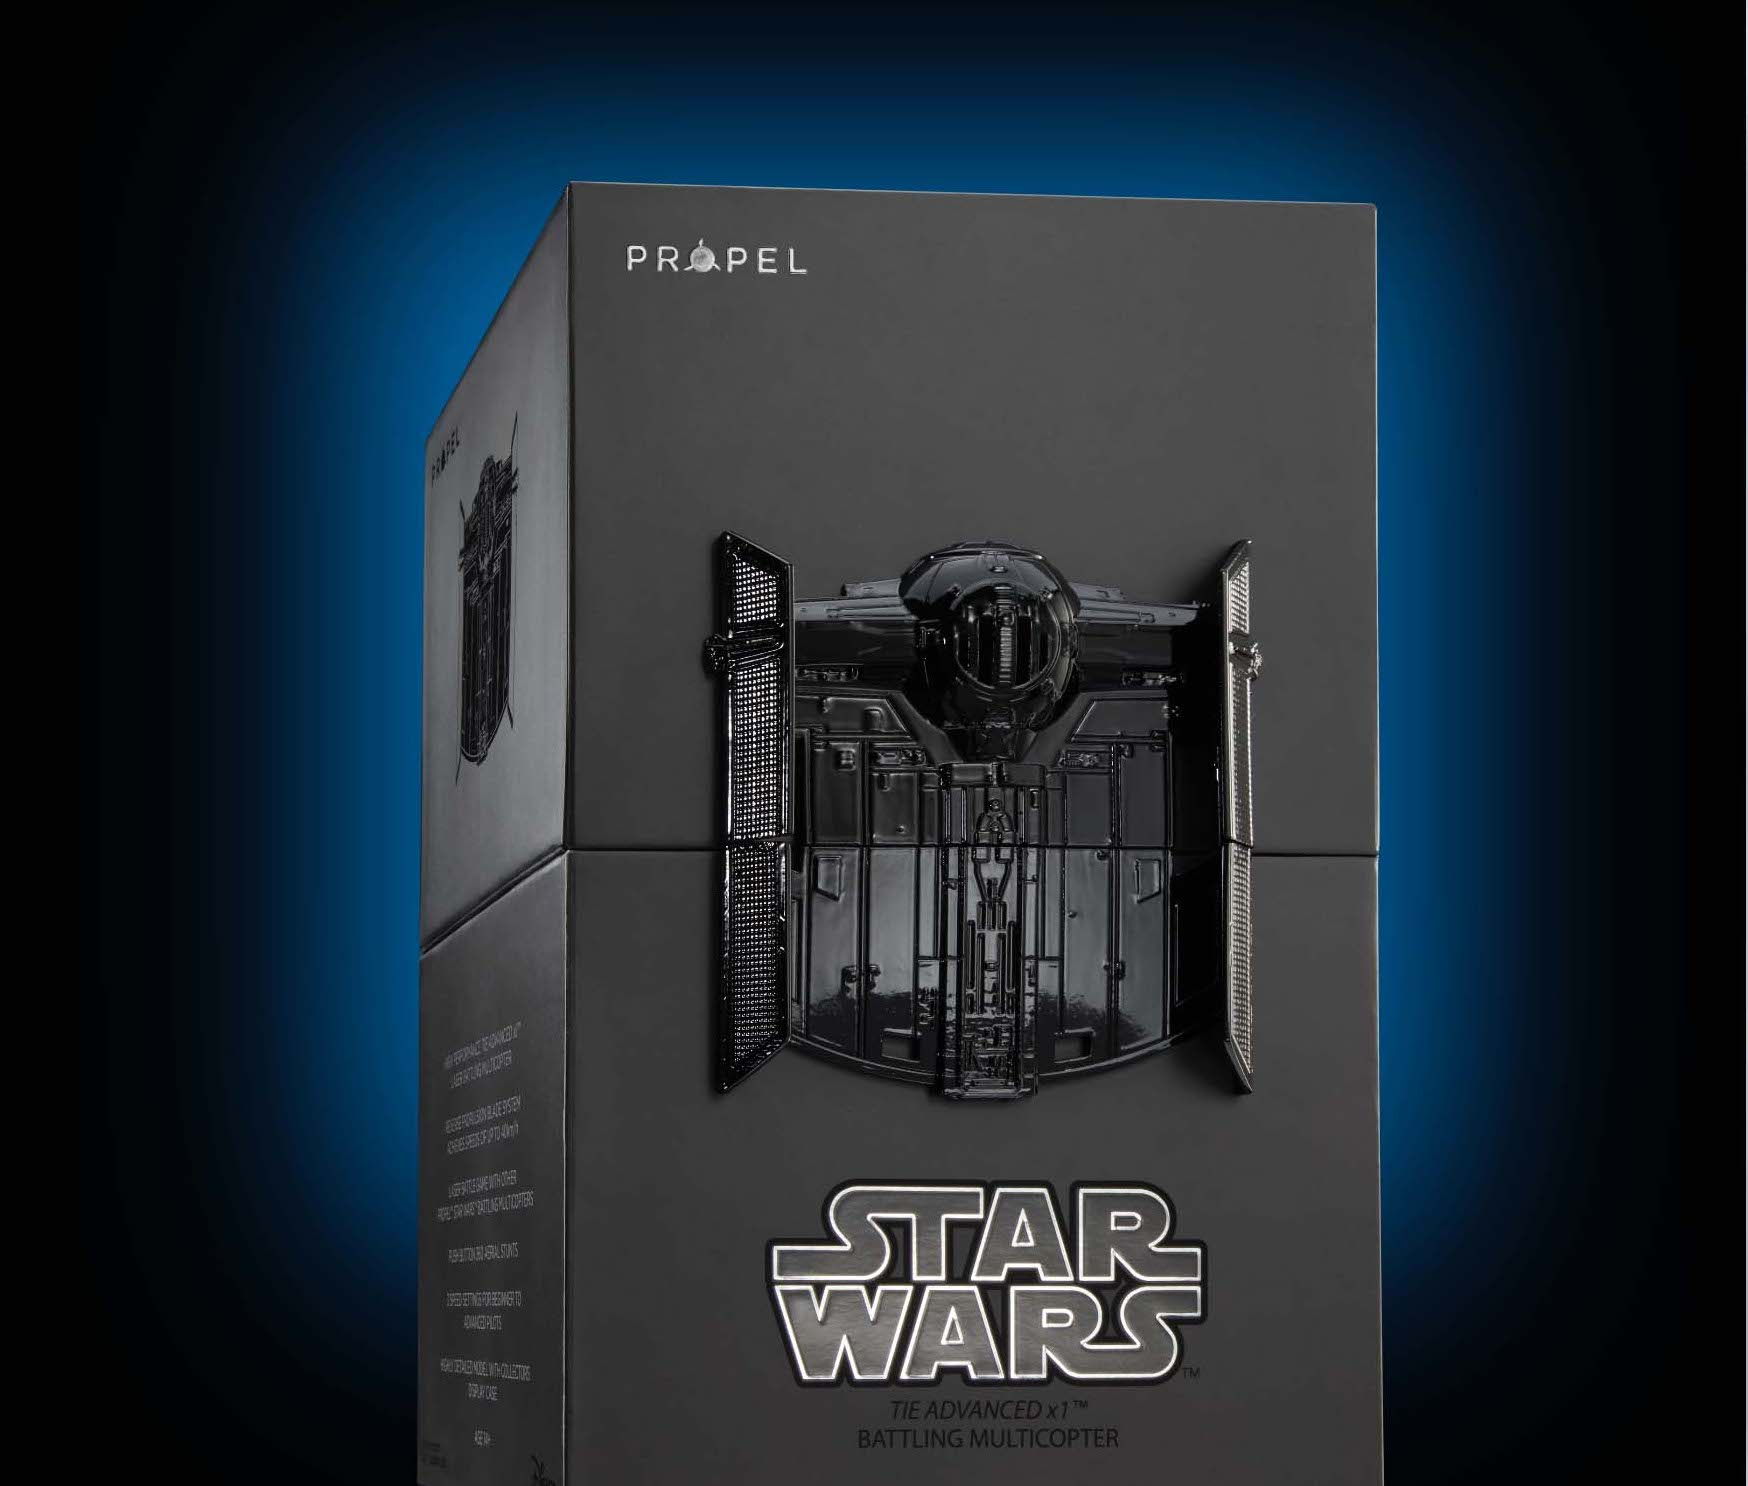 Propel's Star Wars drones are back and better than ever